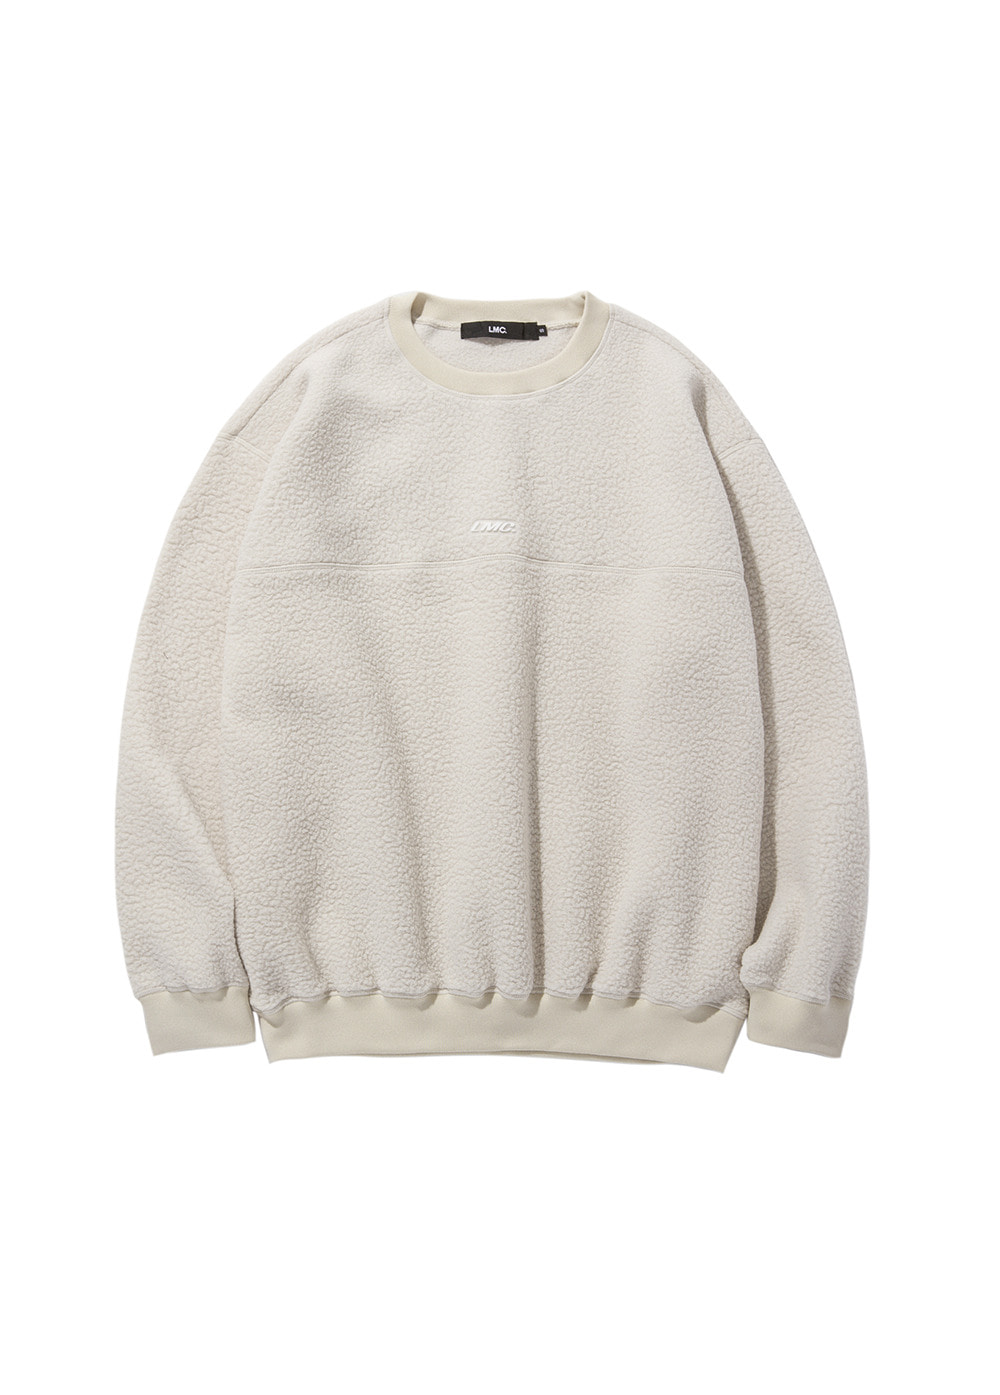 LMC BOA FLEECE OVERSIZED SWEATSHIRT beige